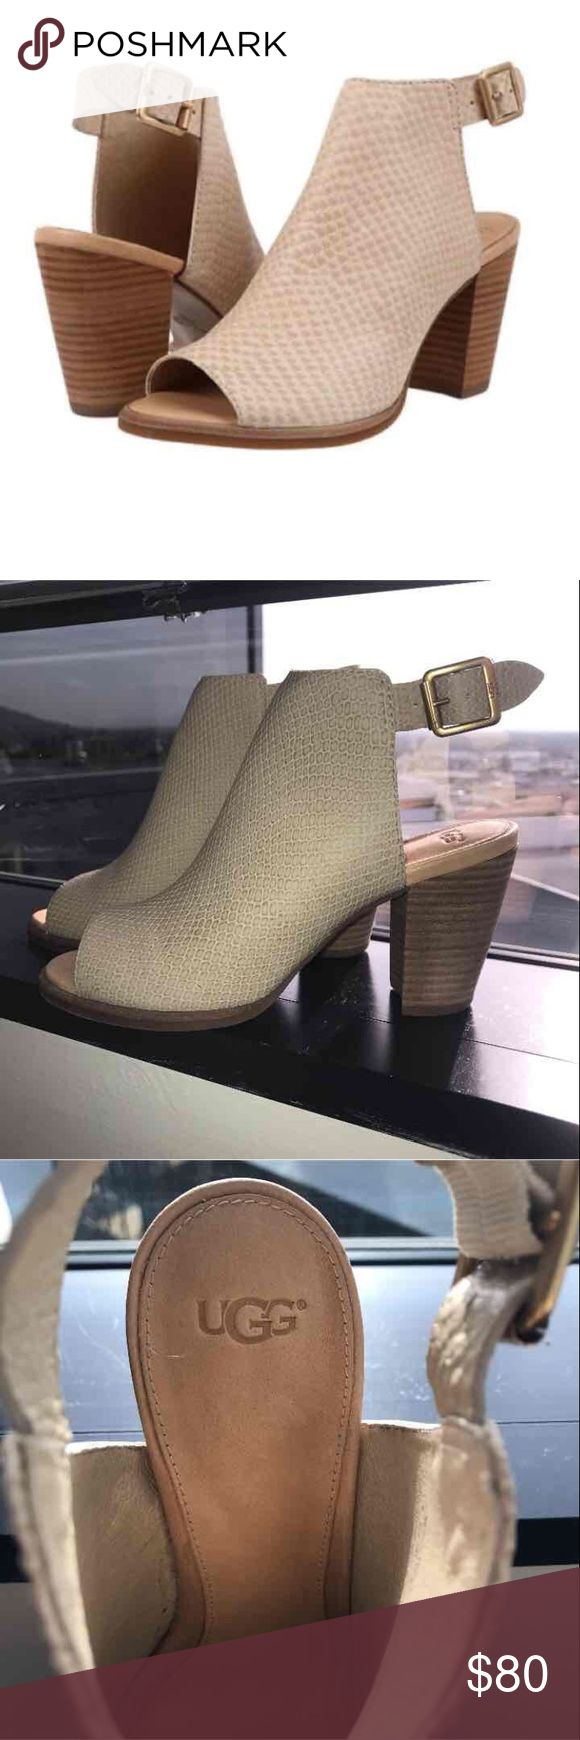 """✨🆕 UGG Australia Audrey Exotic Heels✨ Brand new never worn! Retail for $155. Leather Heel measures approximately 3 inches"""" Keep it exotically cool all summer long in this sassy bootie by UGG®. UGG Shoes Heels"""